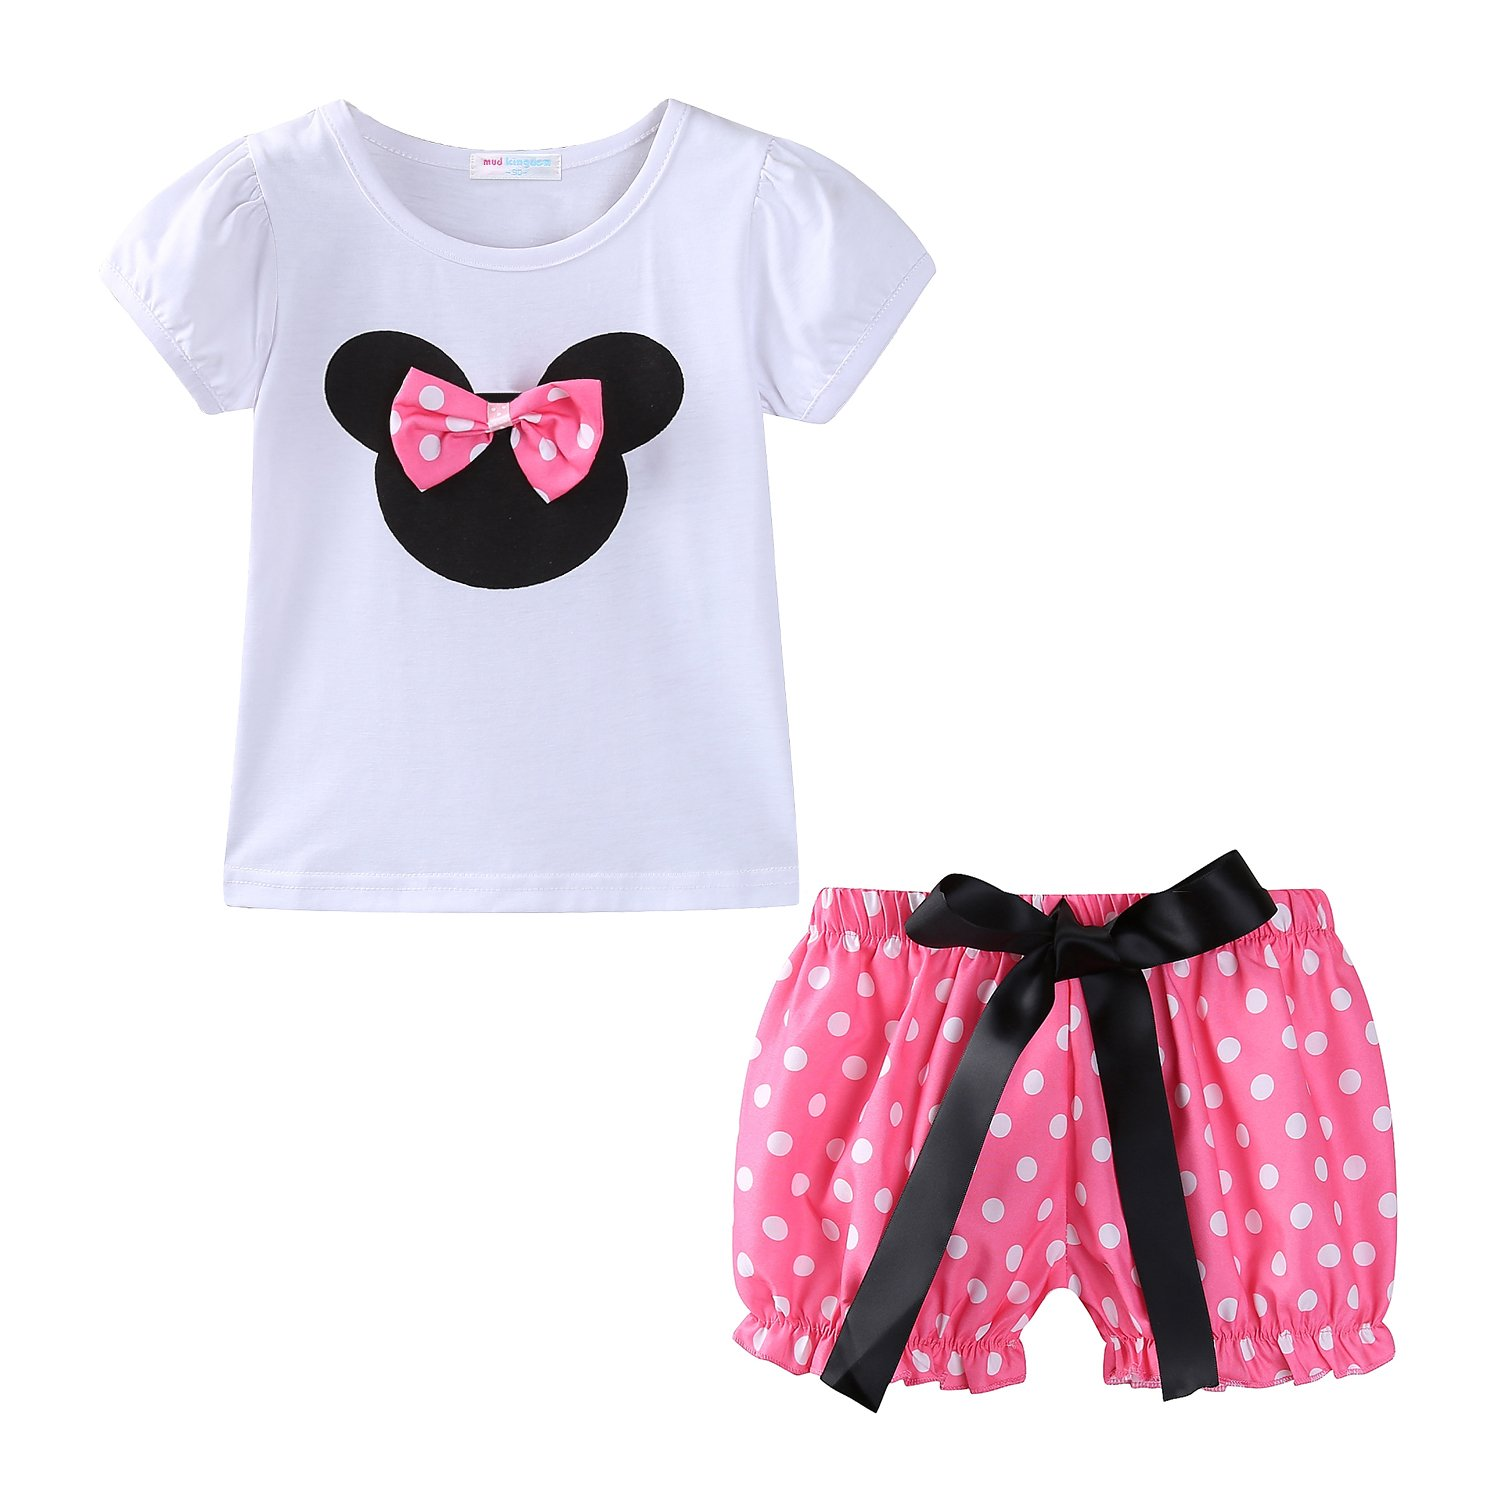 Mud Kingdom Little Girls Holiday Outfits Cute Clothes Short Sets 3T Pink